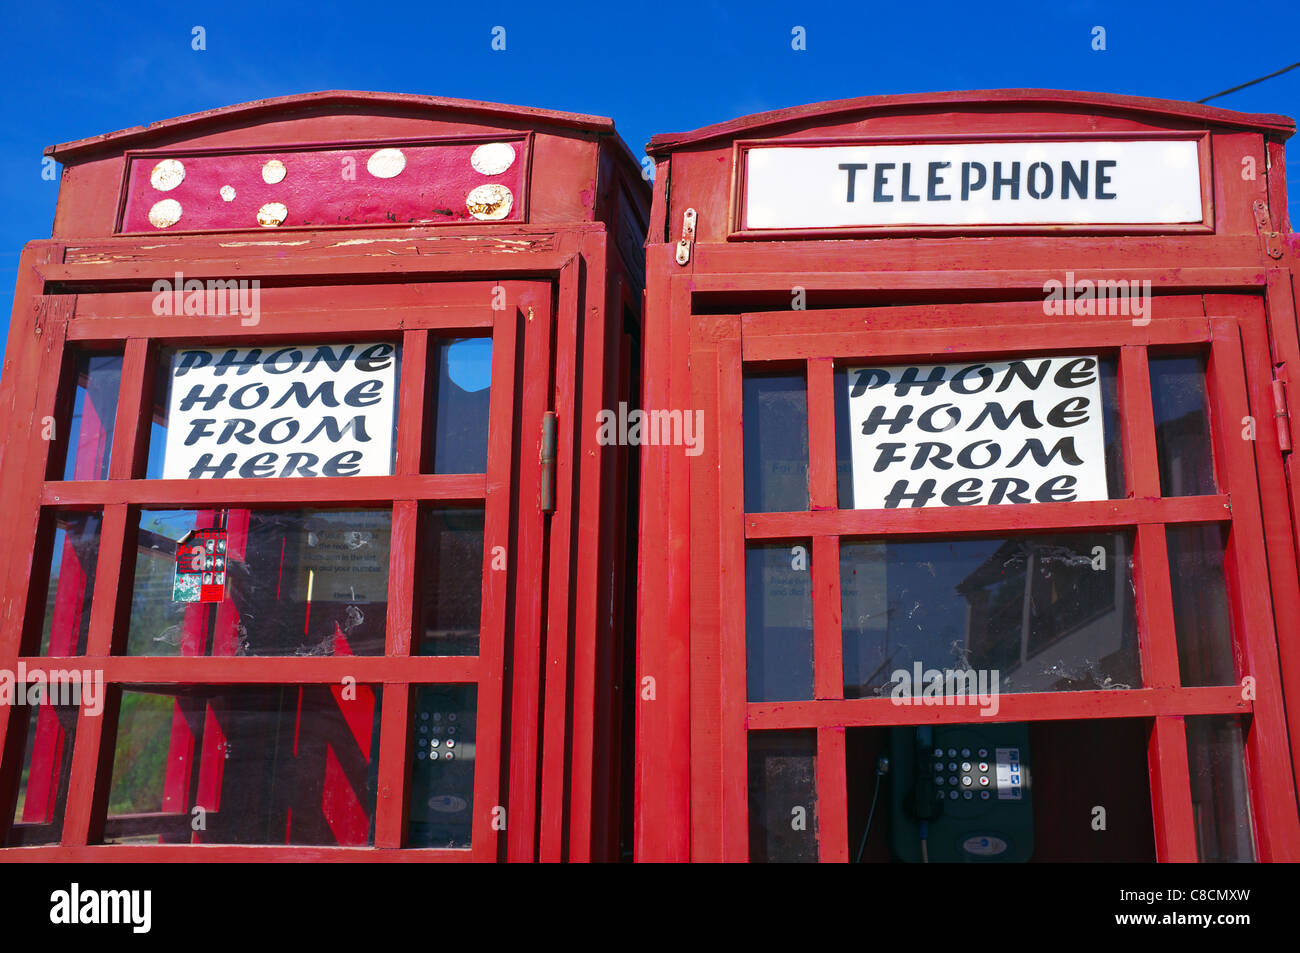 Homemade telephone box, to mimic the old styled British telephone kiosk, on the beach at Sidari, Corfu, Greece - Stock Image